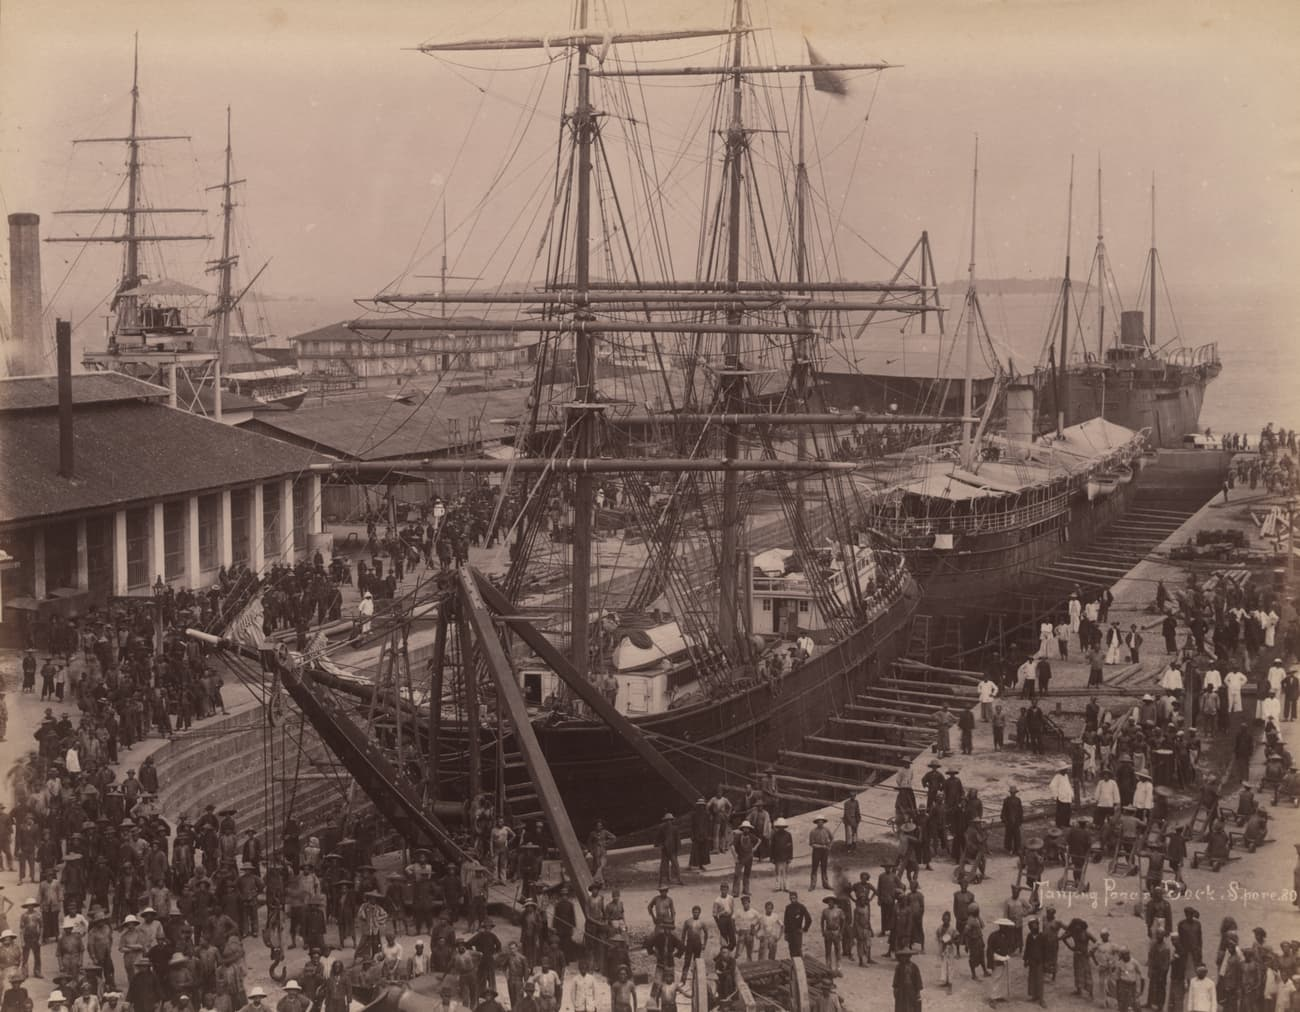 Vessels being repaired in Victoria Dock, 1890s